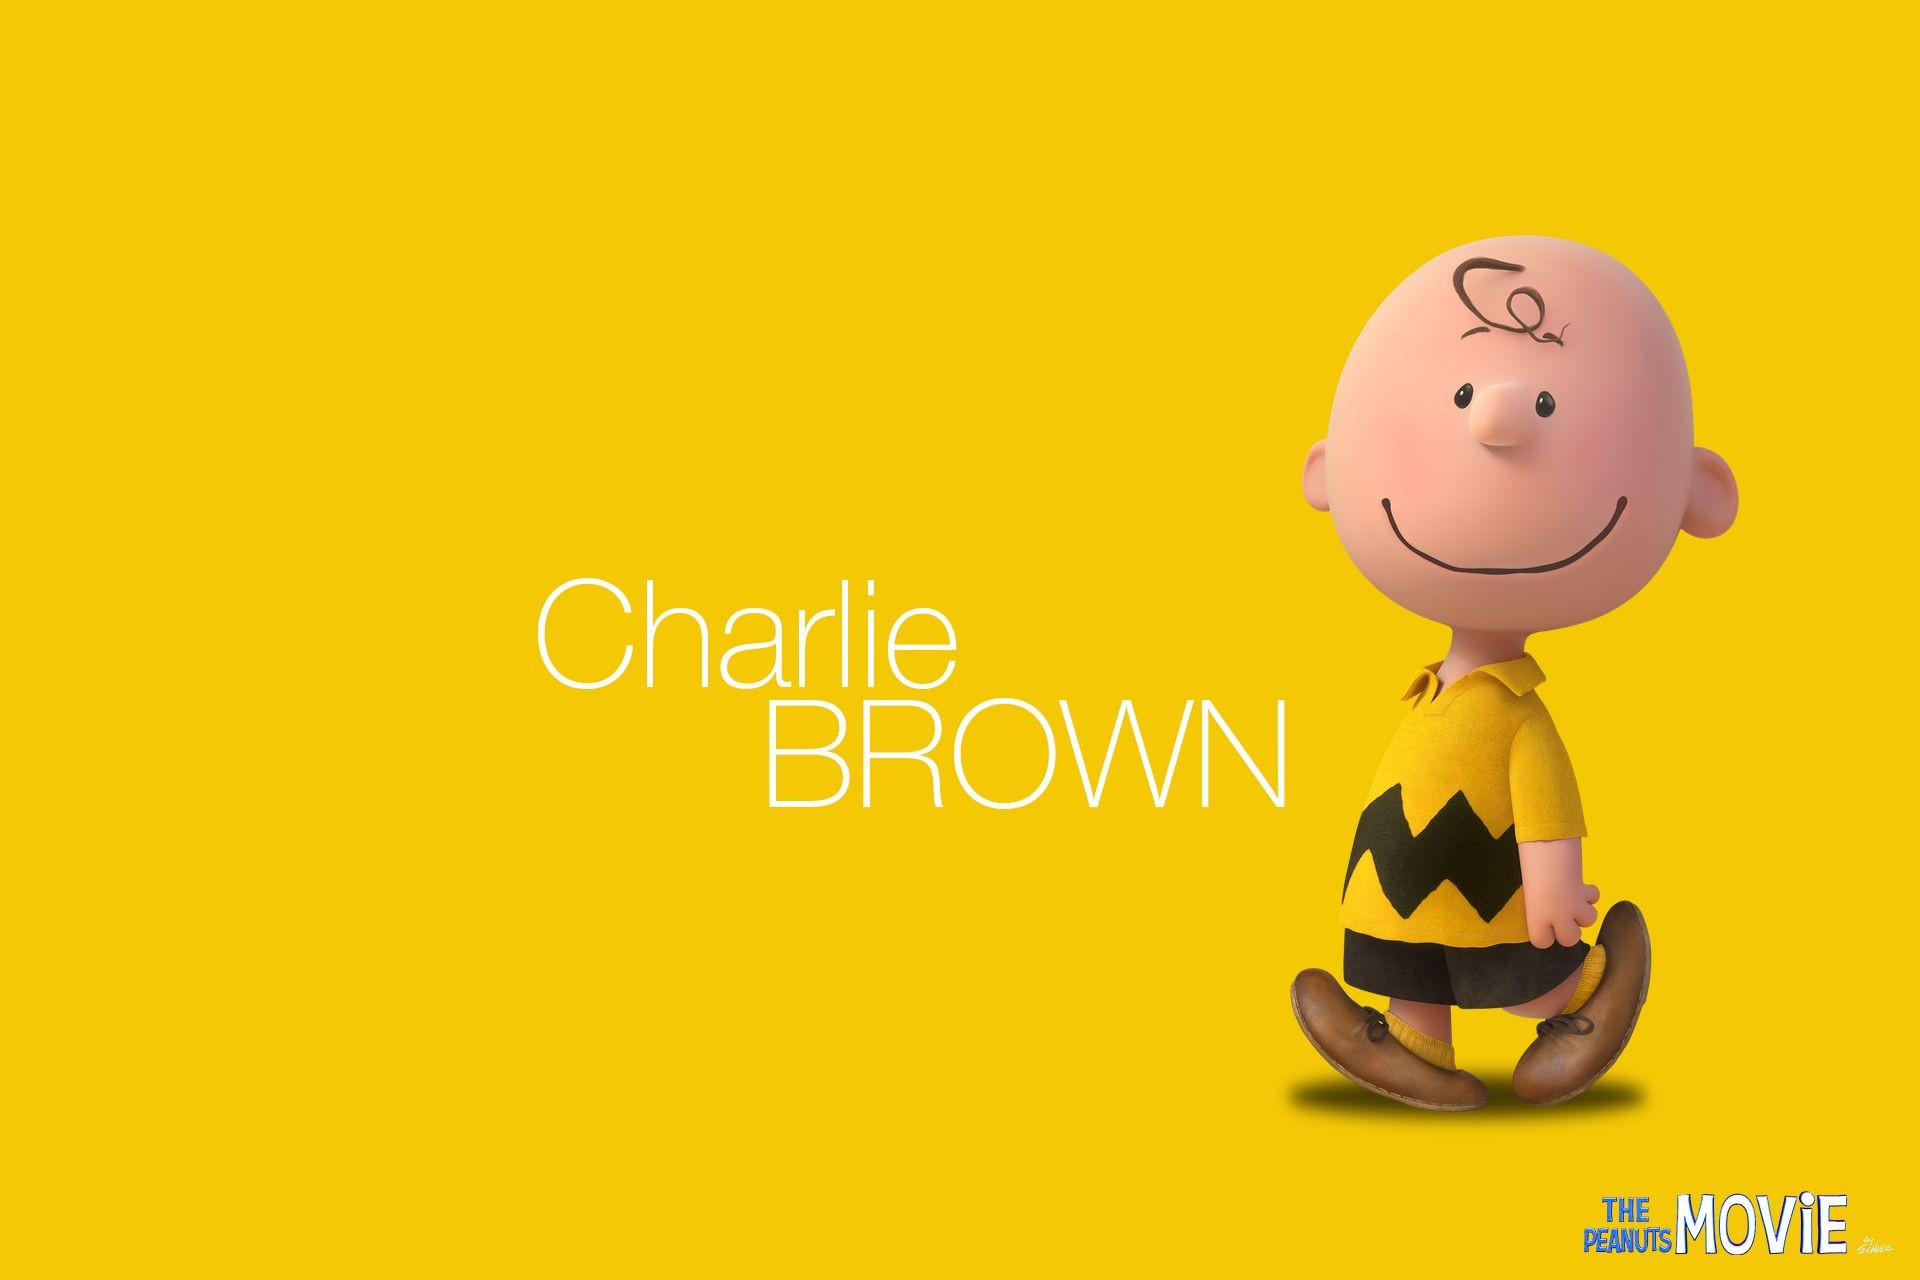 1920x1280 The Peanuts Movie HD wallpaper: Charlie Brown